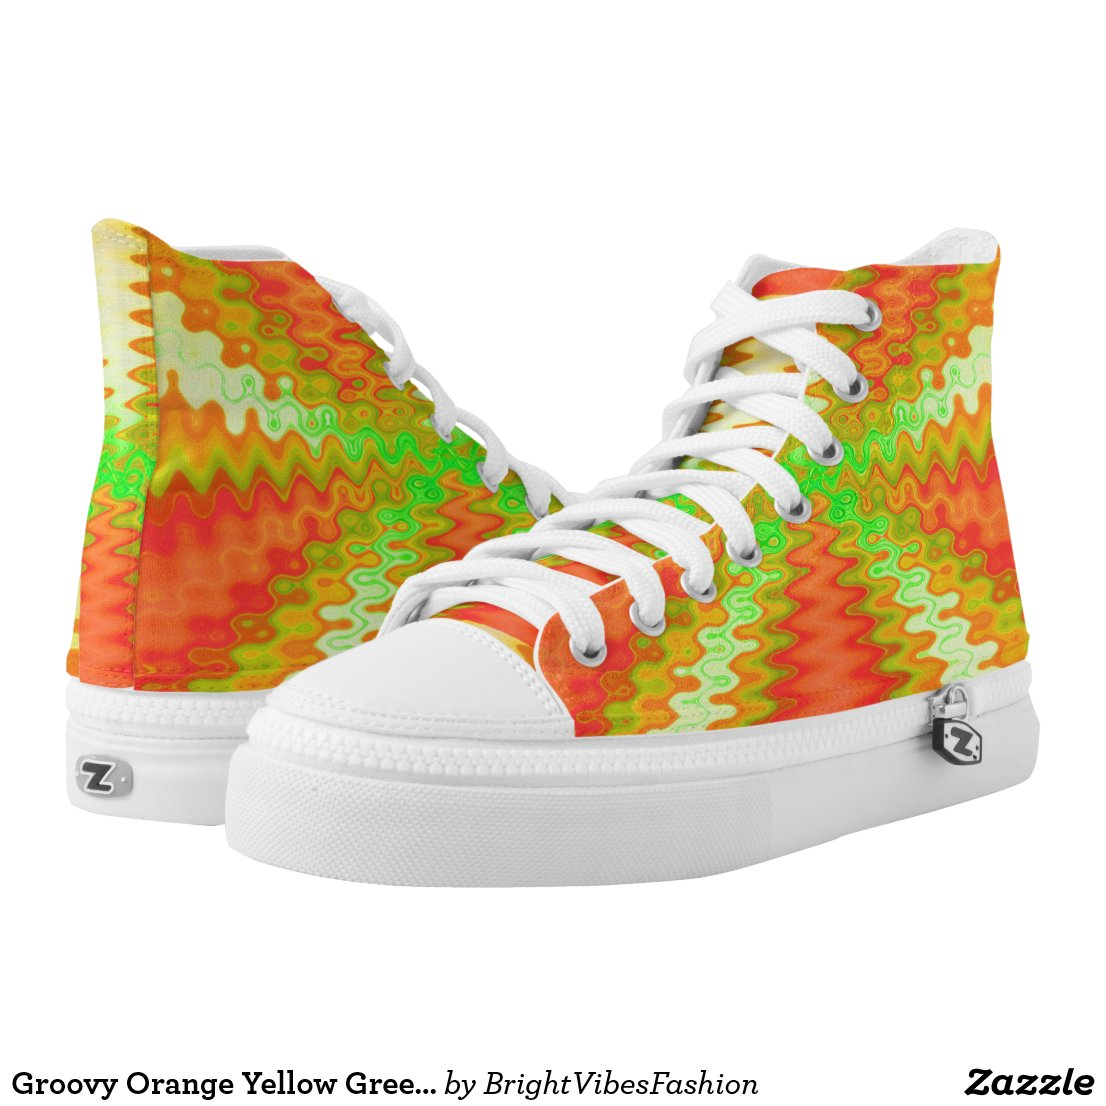 Groovy Orange Yellow Green Vibes Abstract High-Top Sneakers